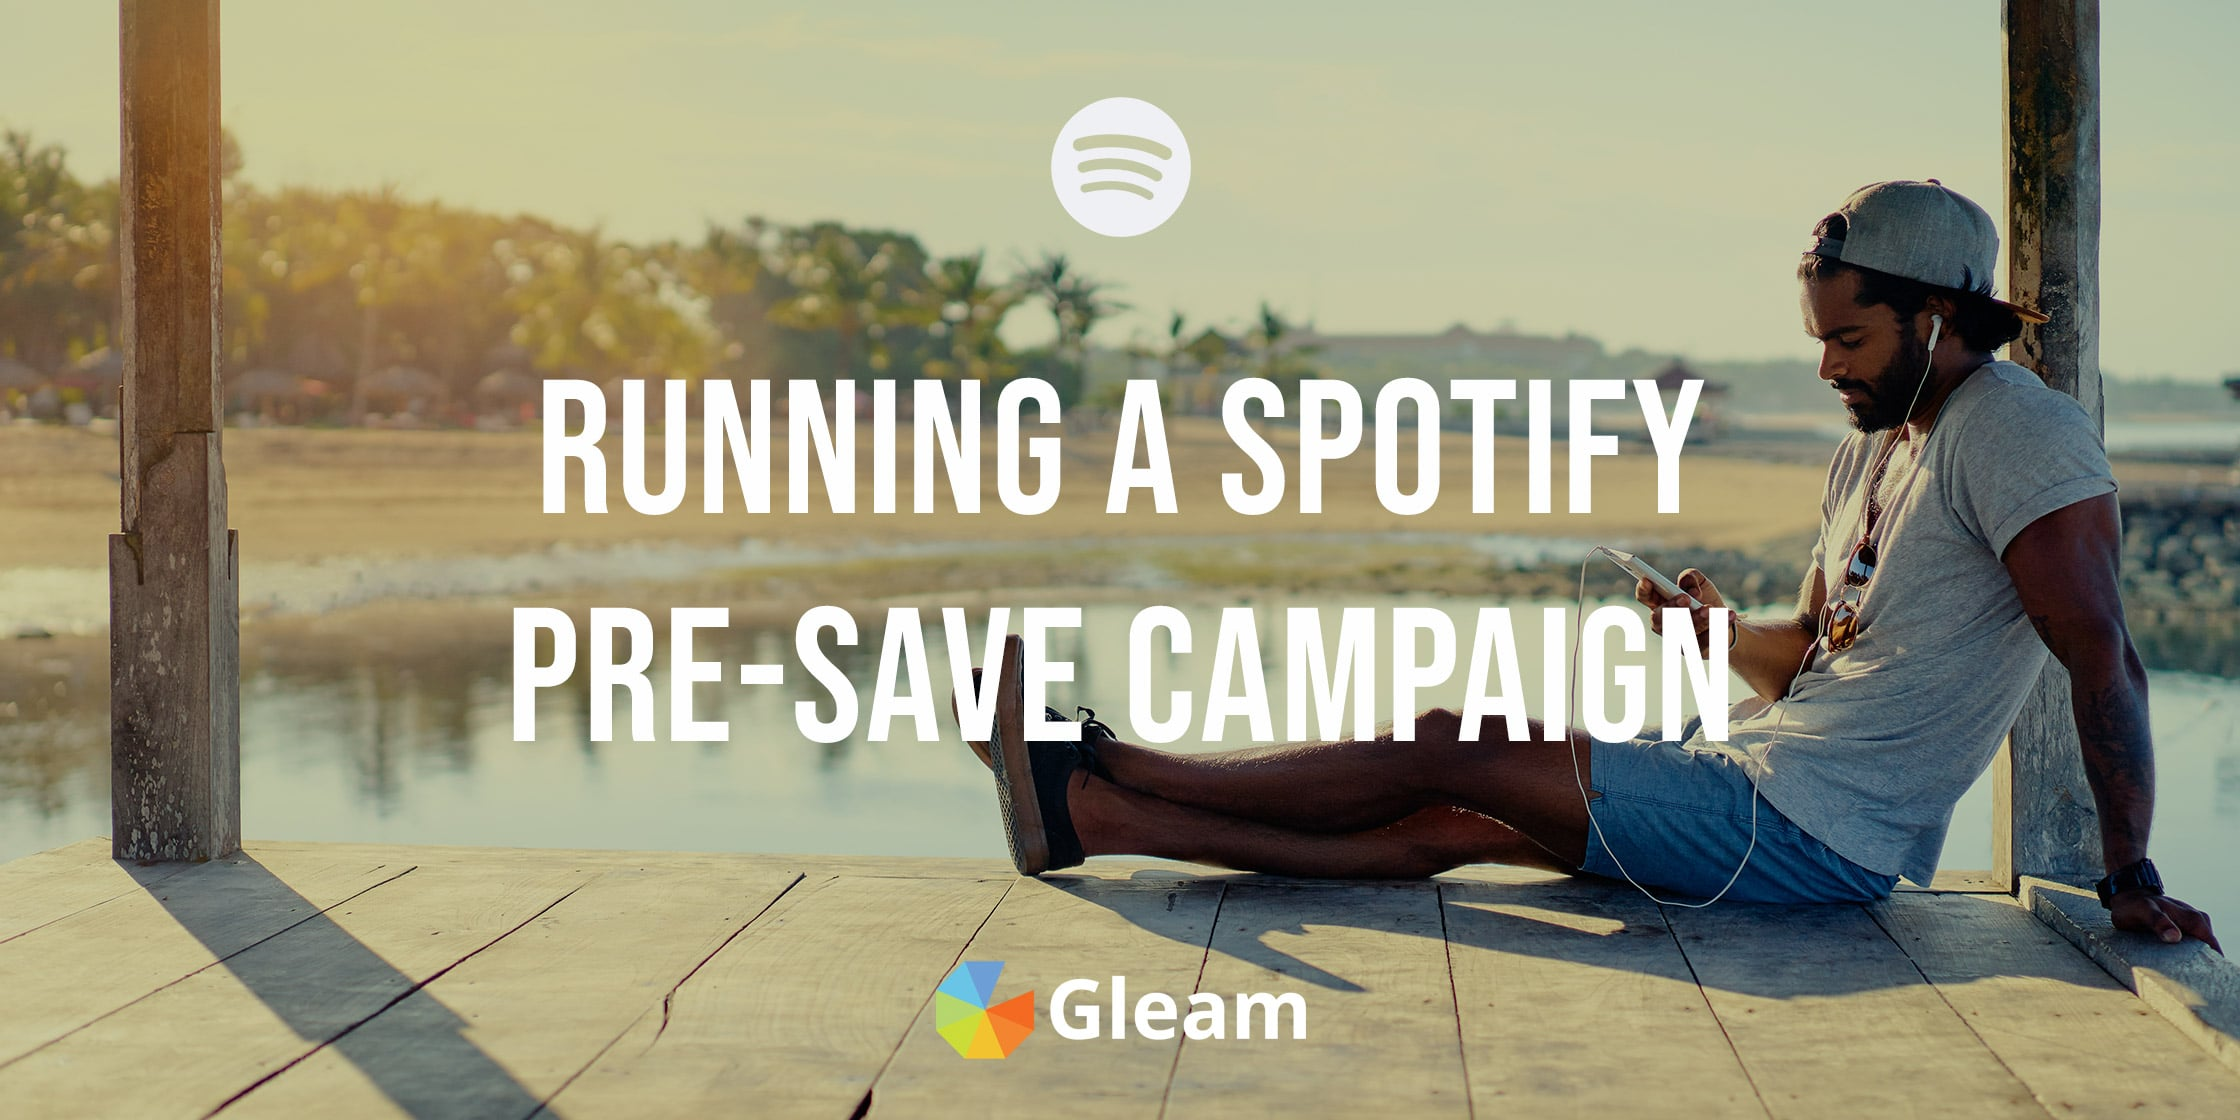 Boost Your Spotify Listens With Pre-Save Campaigns